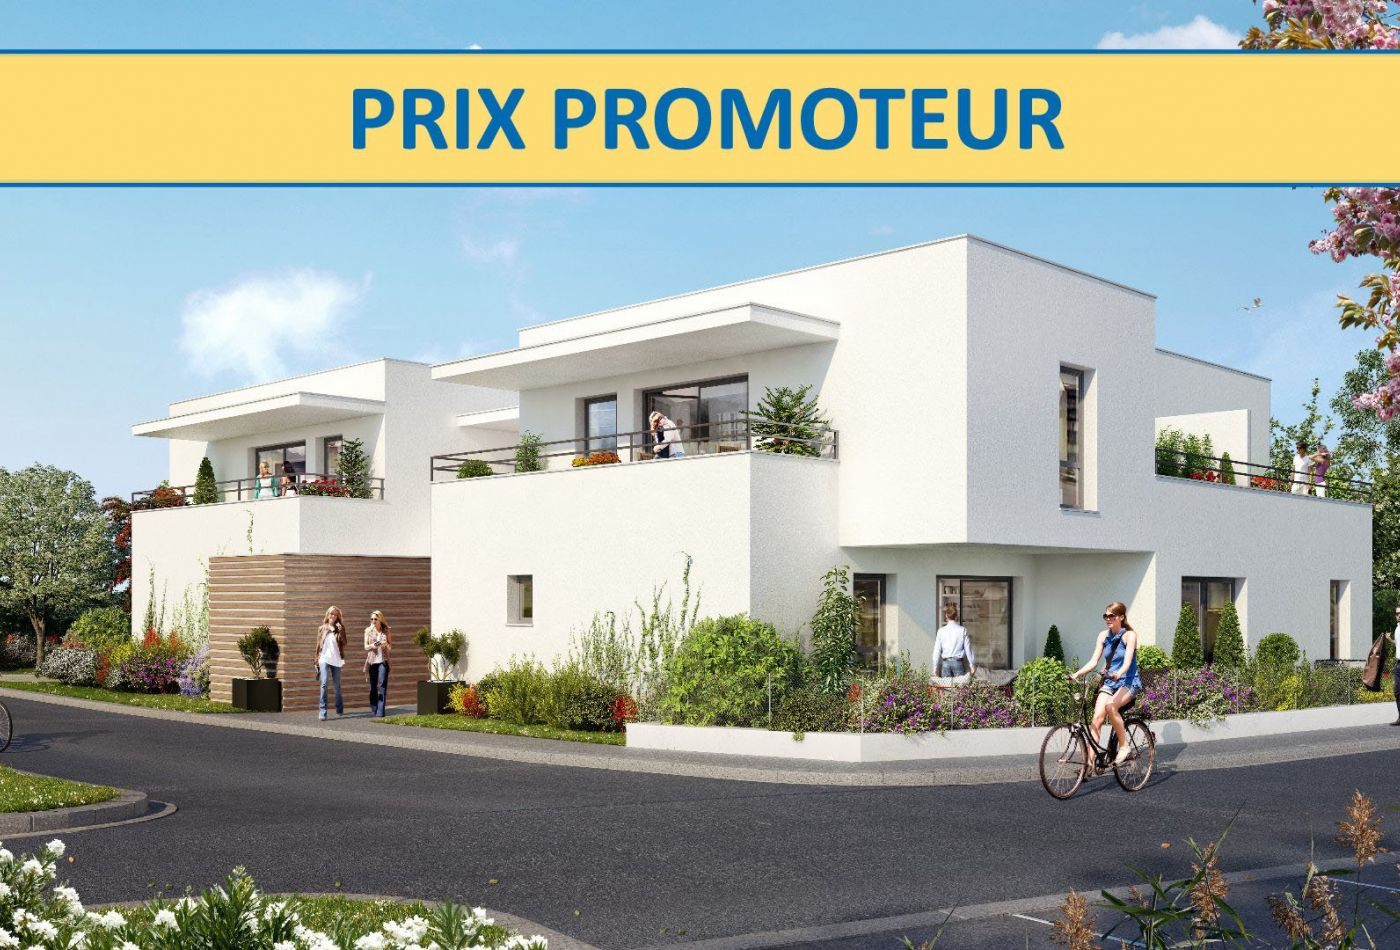 Programme immobilier spring garden neuf anglet aquitaine for Aide achat immobilier neuf